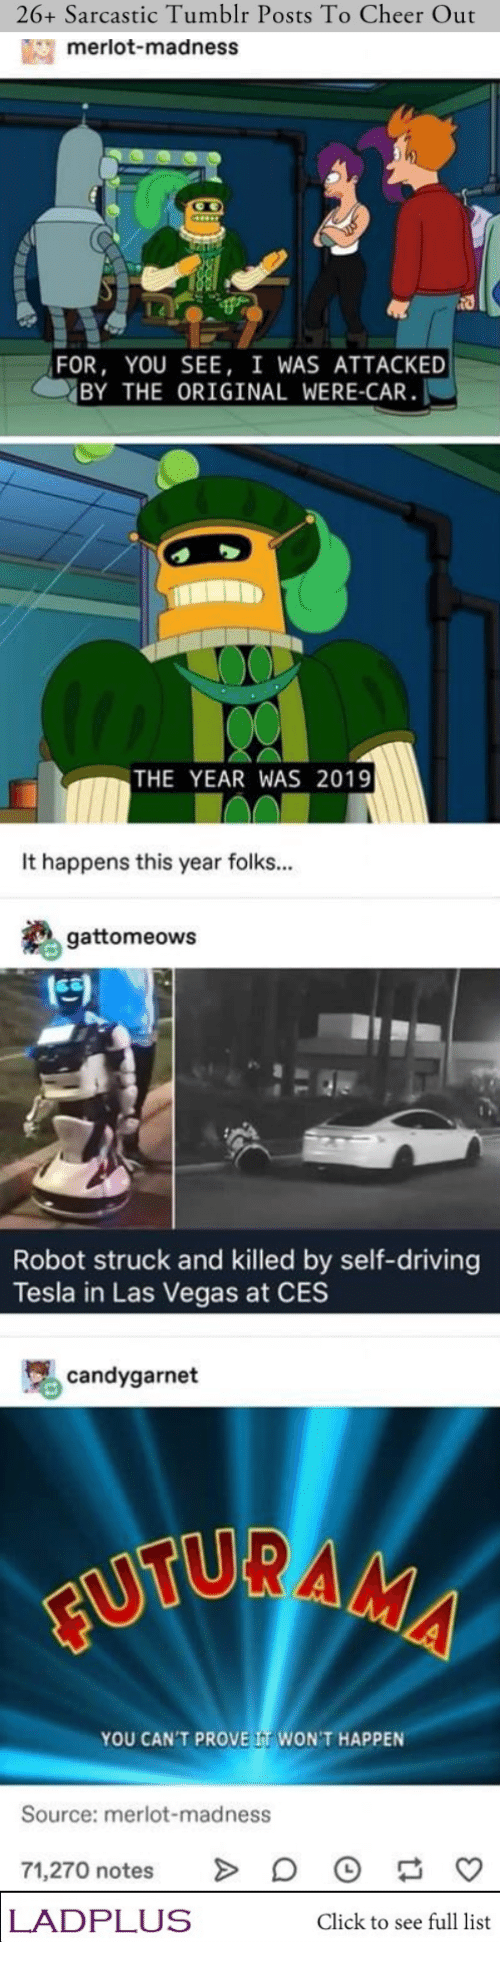 madness: 26+ Sarcastic Tumblr Posts To Cheer Out  merlot-madness  FOR, YOU SEE, I WAS ATTACKED  BY THE ORIGINAL WERE-CAR  THE YEAR WAS 2019  It happens this year folks...  gattomeows  Robot struck and killed by self-driving  Tesla in Las Vegas at CES  candygarnet  FUTURAMA  YOU CAN'T PROVE IT WON'T HAPPEN  Source: merlot-madness  71,270 notes  LADPLUS  Click to see full list